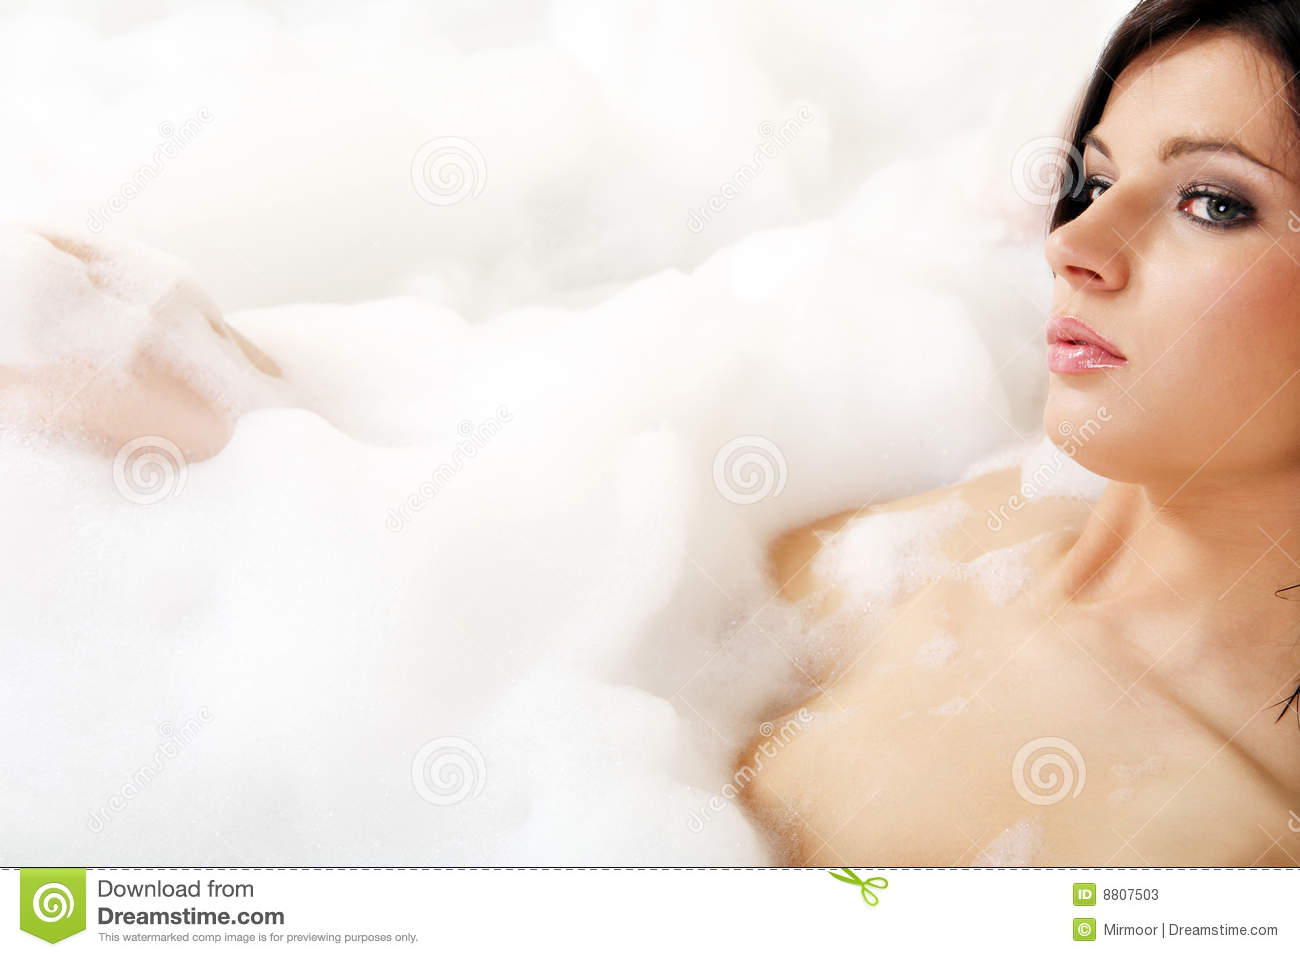 Woman in bathtub. stock image. Image of lady, home, leisure - 8807503